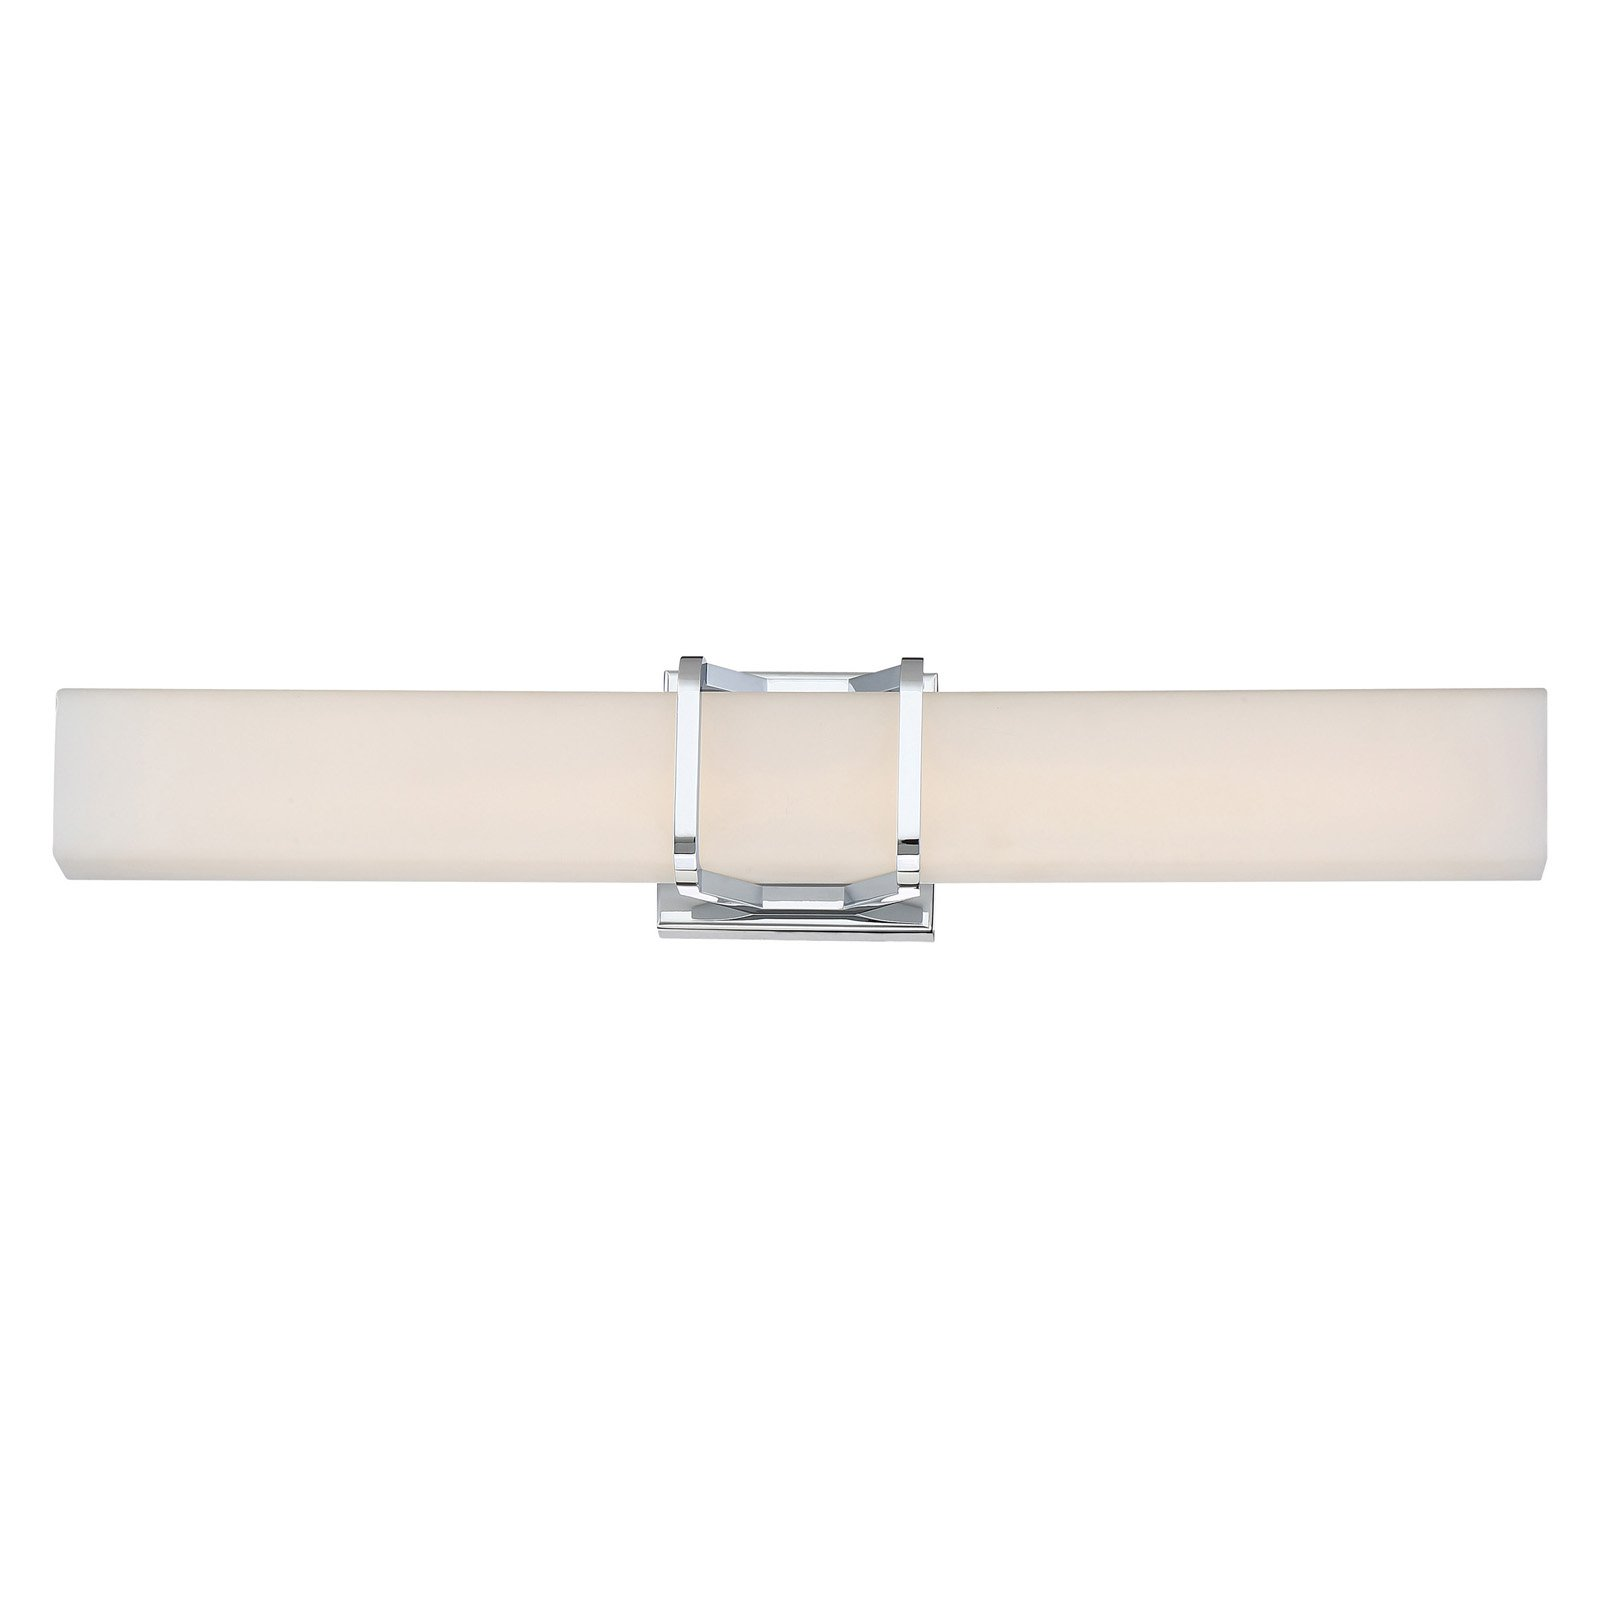 Quoizel Axis PCAS85 Vanity Light by Quoizel